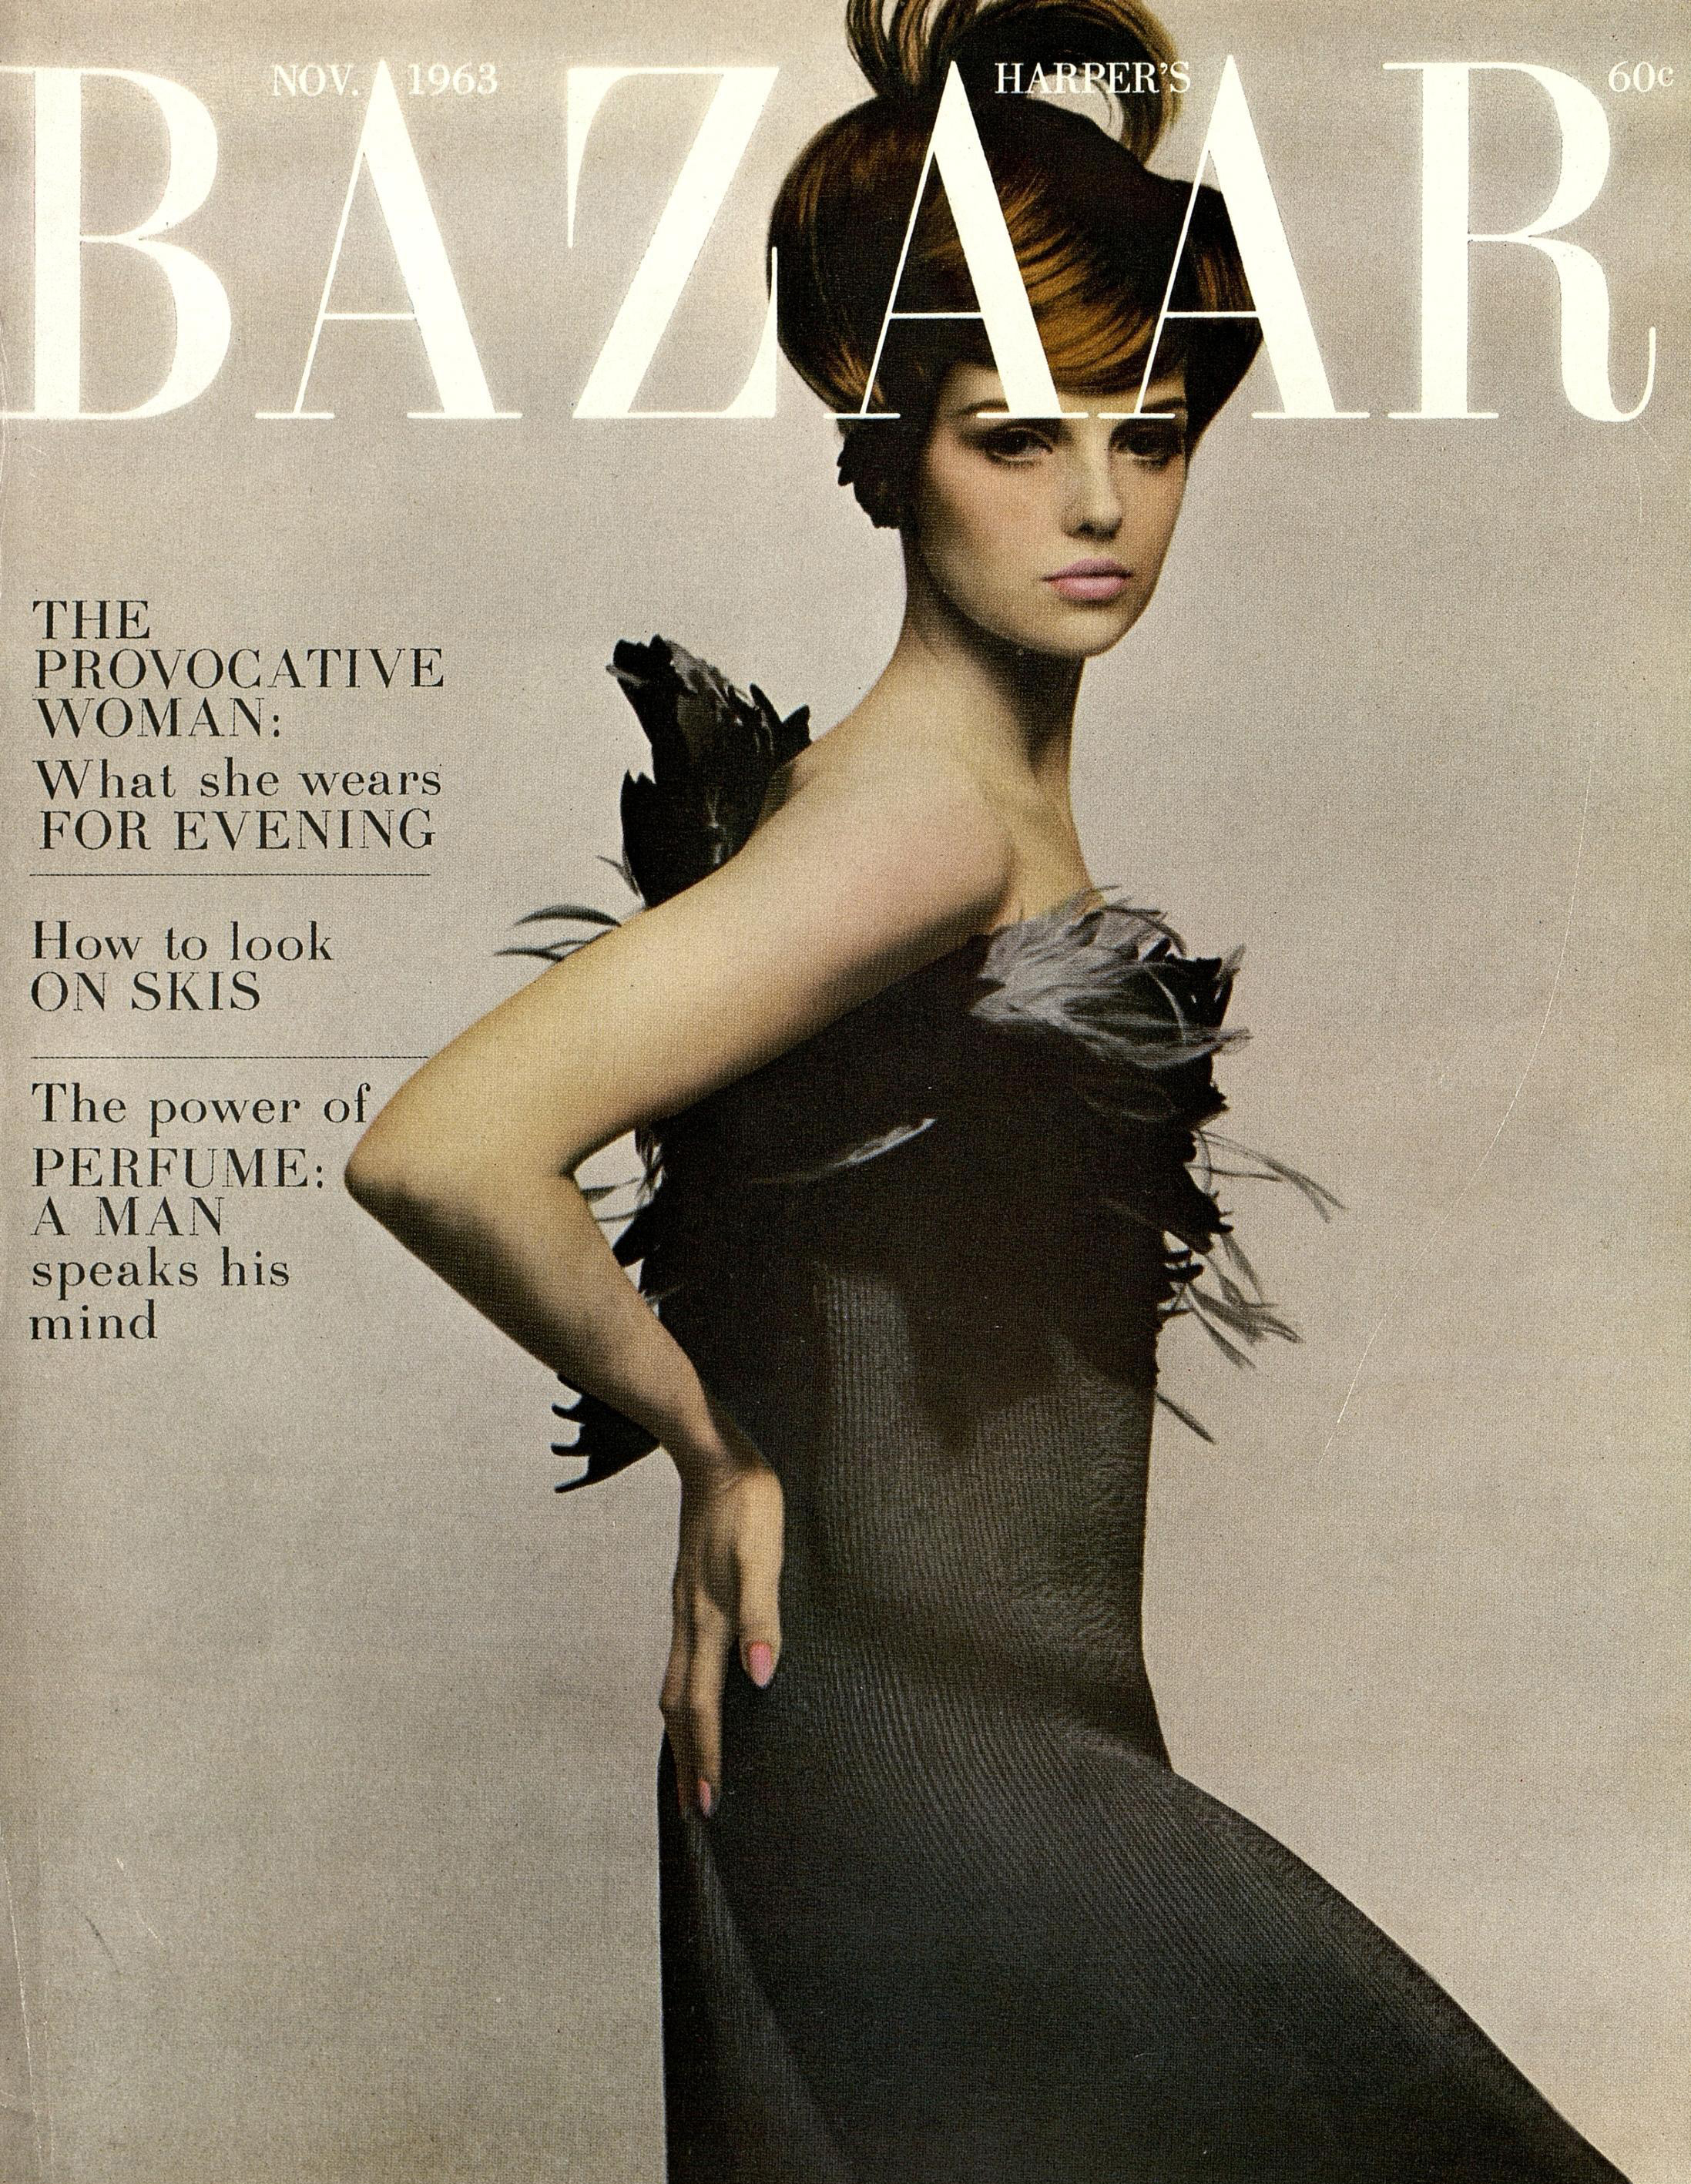 A feather-trimmed evening column for the cover of Harper's Bazaar, November 1963—photographed by Melvin Sokolsky.